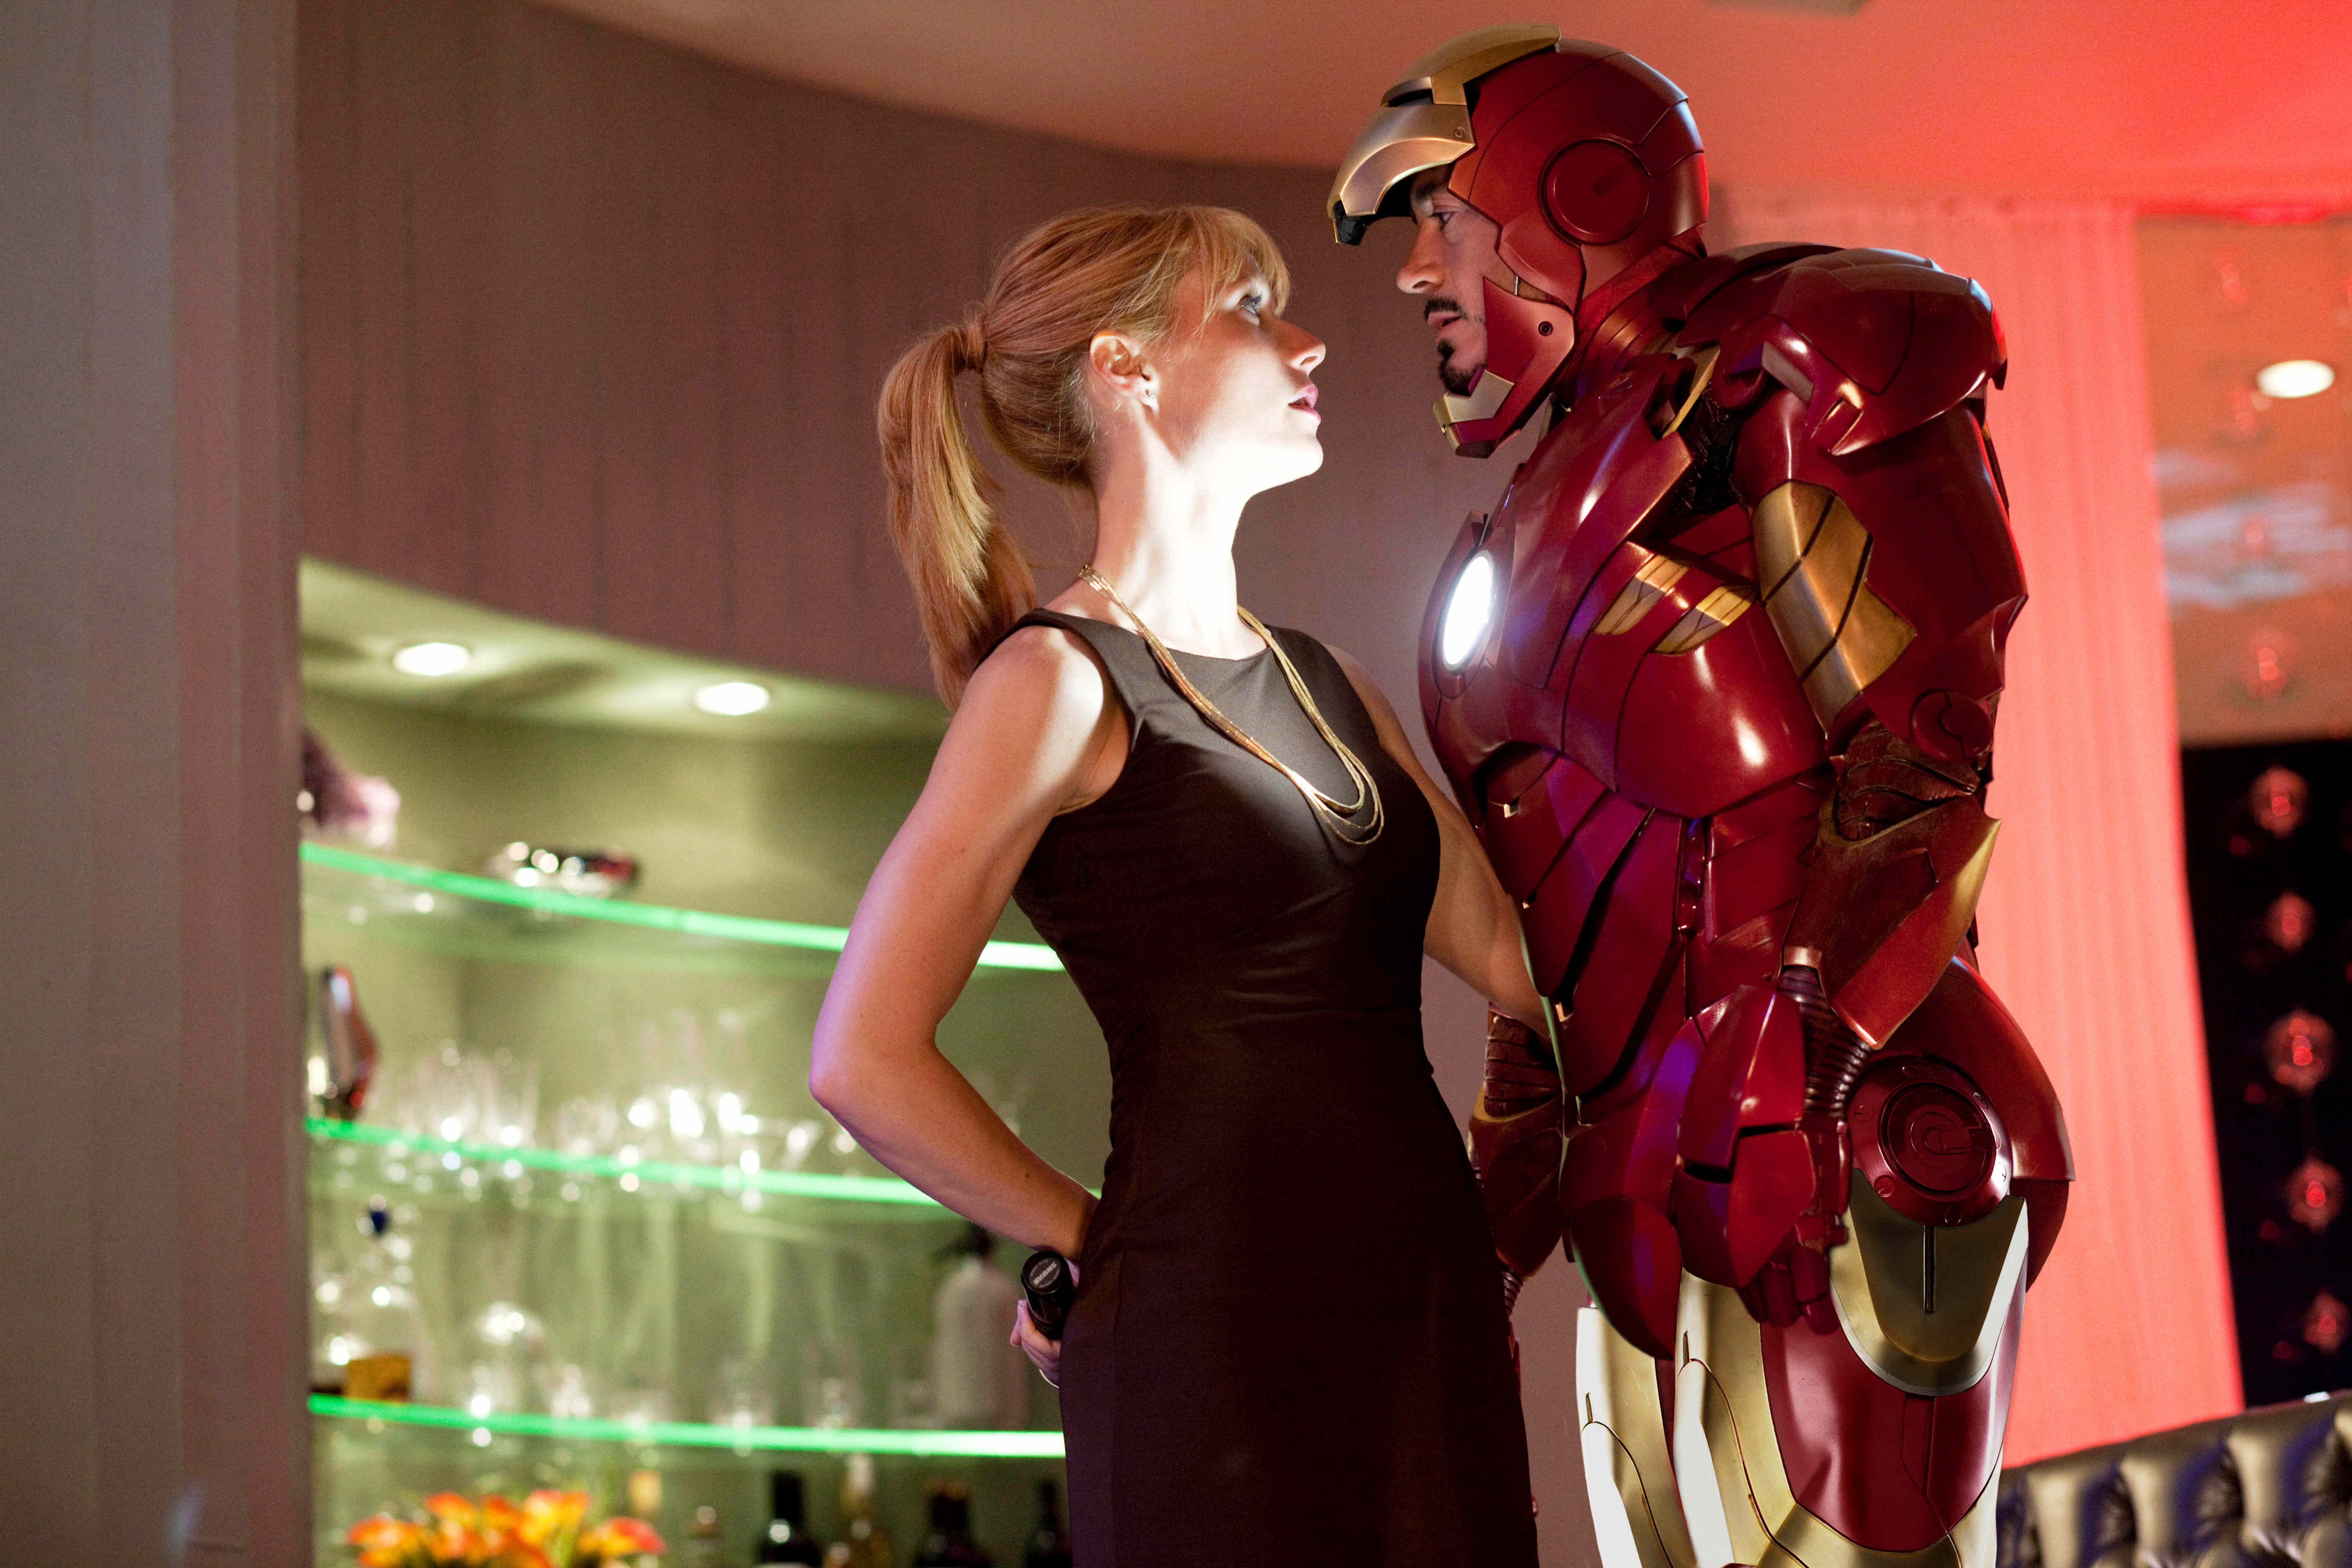 Gwyneth Paltrow stars as Pepper Potts and Robert Downey Jr. stars as Tony Stark/Iron Man in Paramount Pictures' Iron Man 2 (2010)